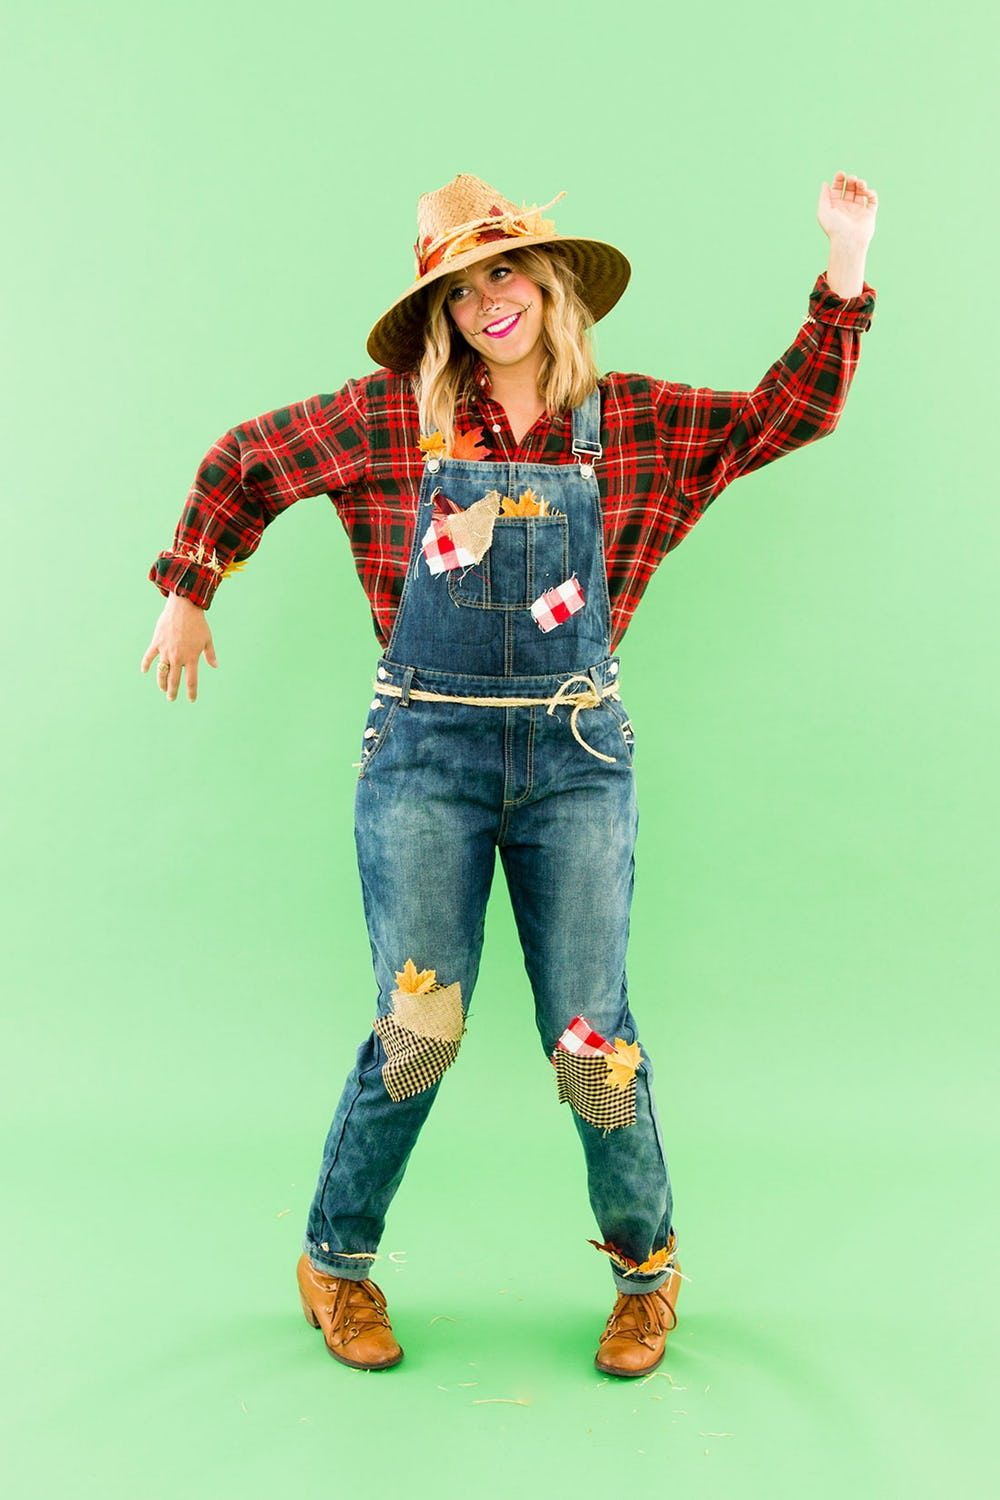 DIY This Last Minute Scarecrow Costume With Pieces from Your Own Closet